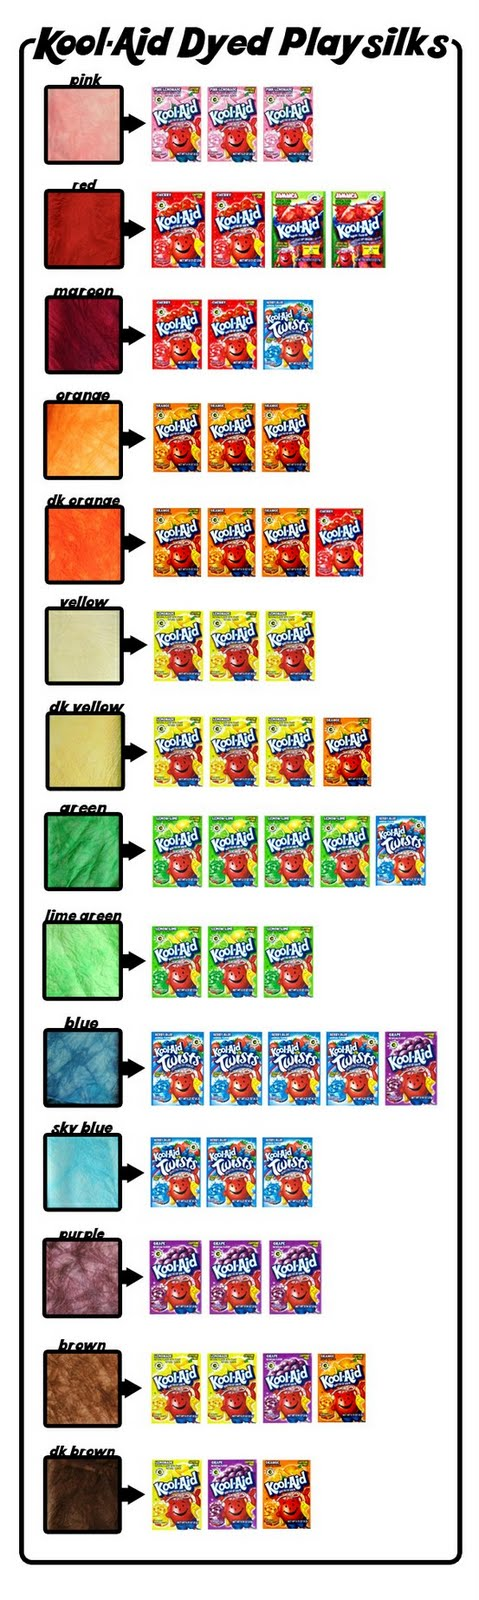 Kool-Aid color chart for dyed play silks